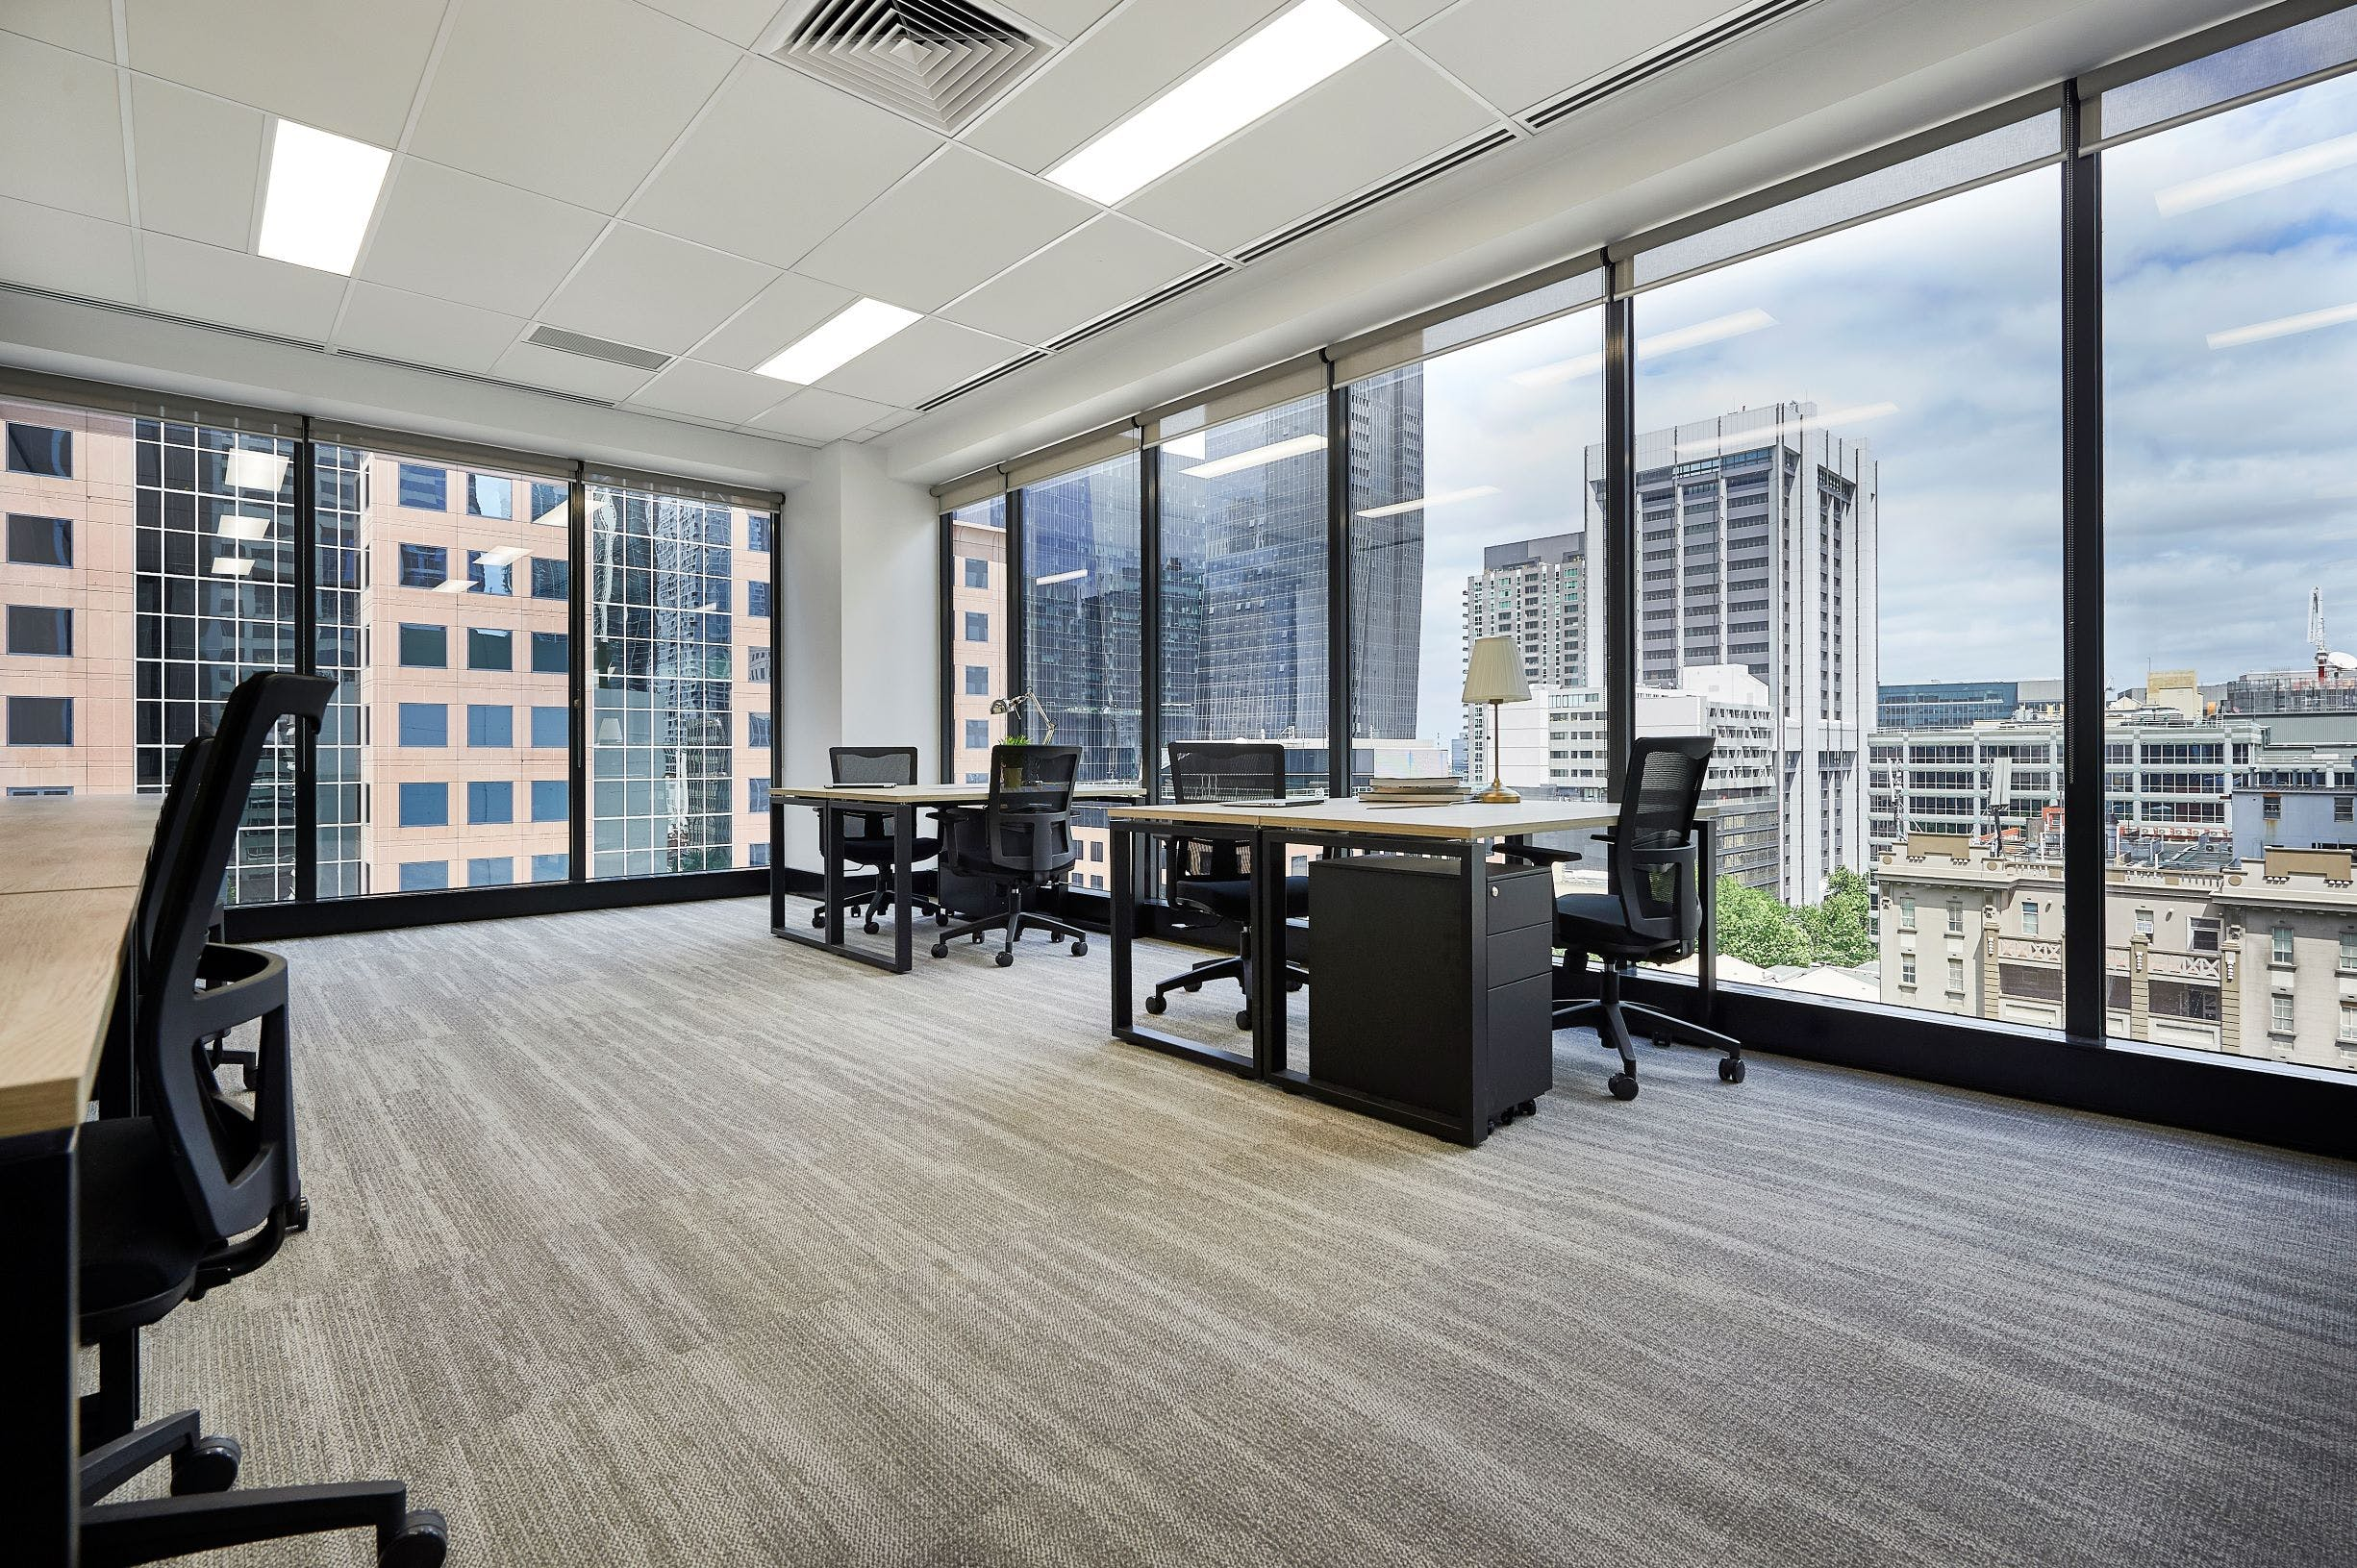 Suite 741, private office at Altitude CoWork, image 1